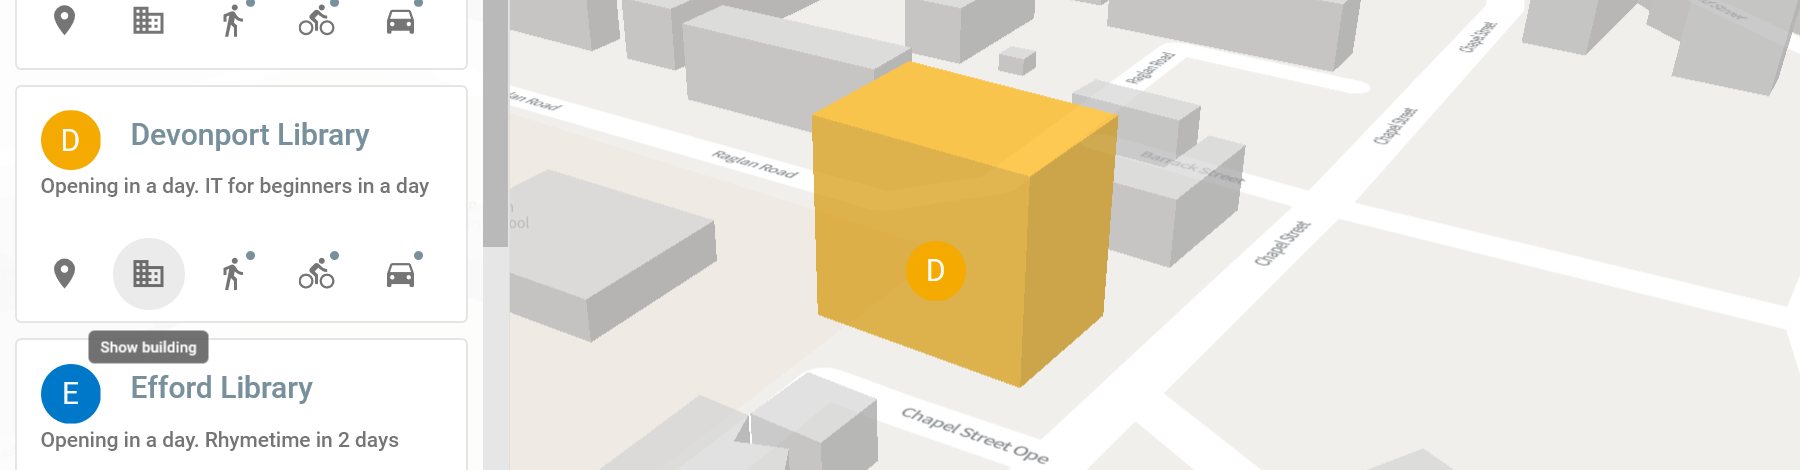 A screenshot of a map, displayed at an angle showing the building in 3D as a cube